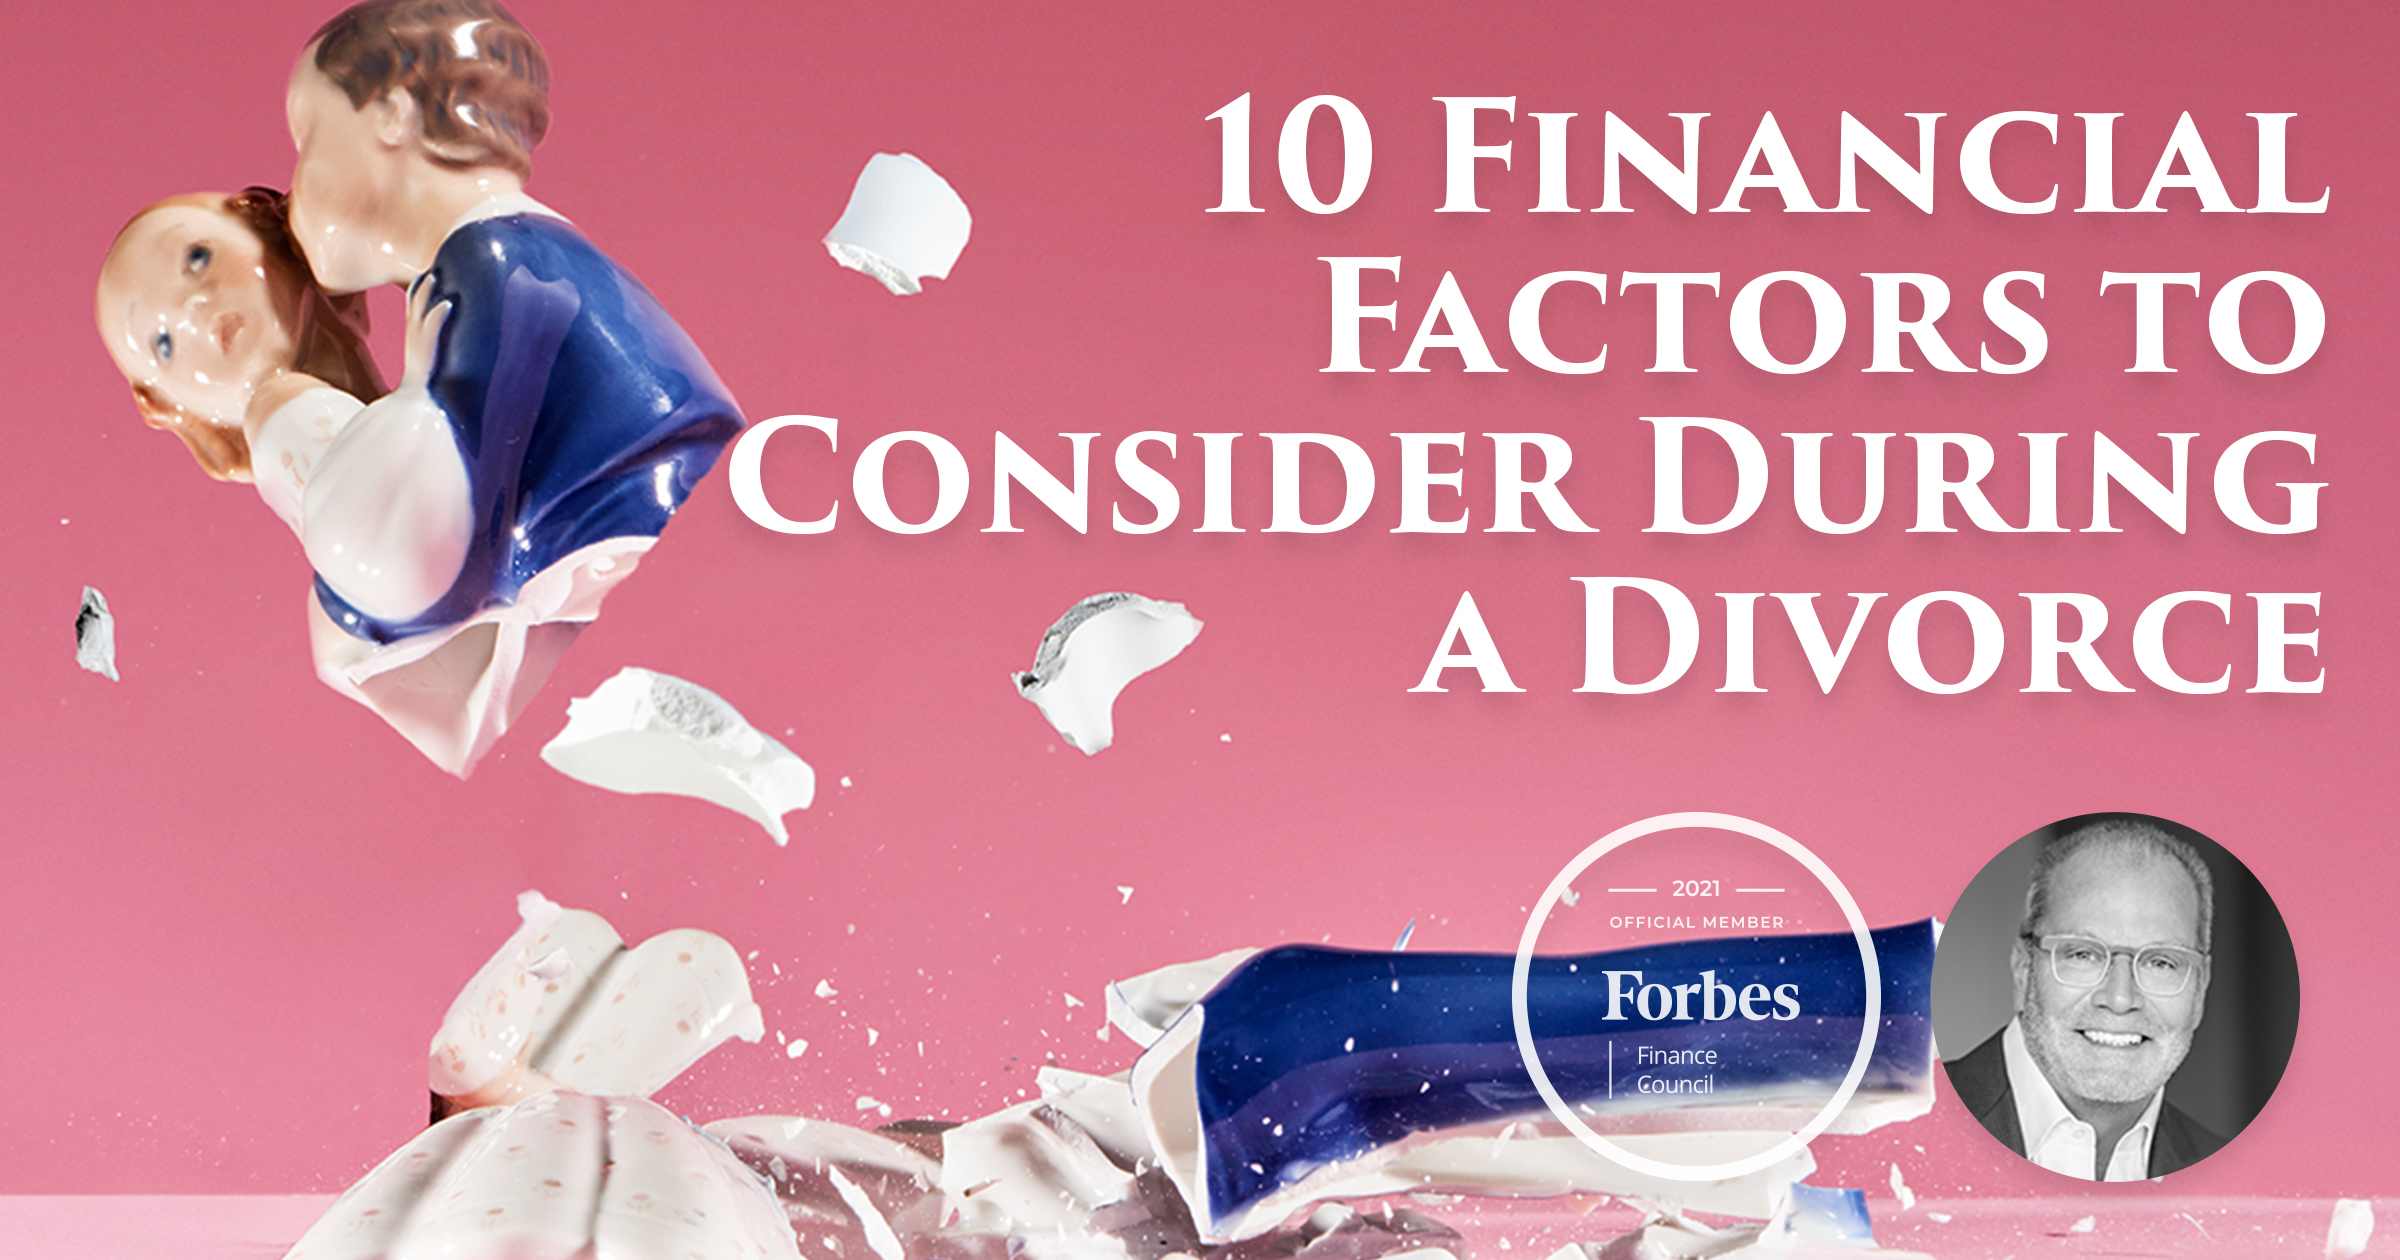 10 Financial Factors To Consider During A Divorce.